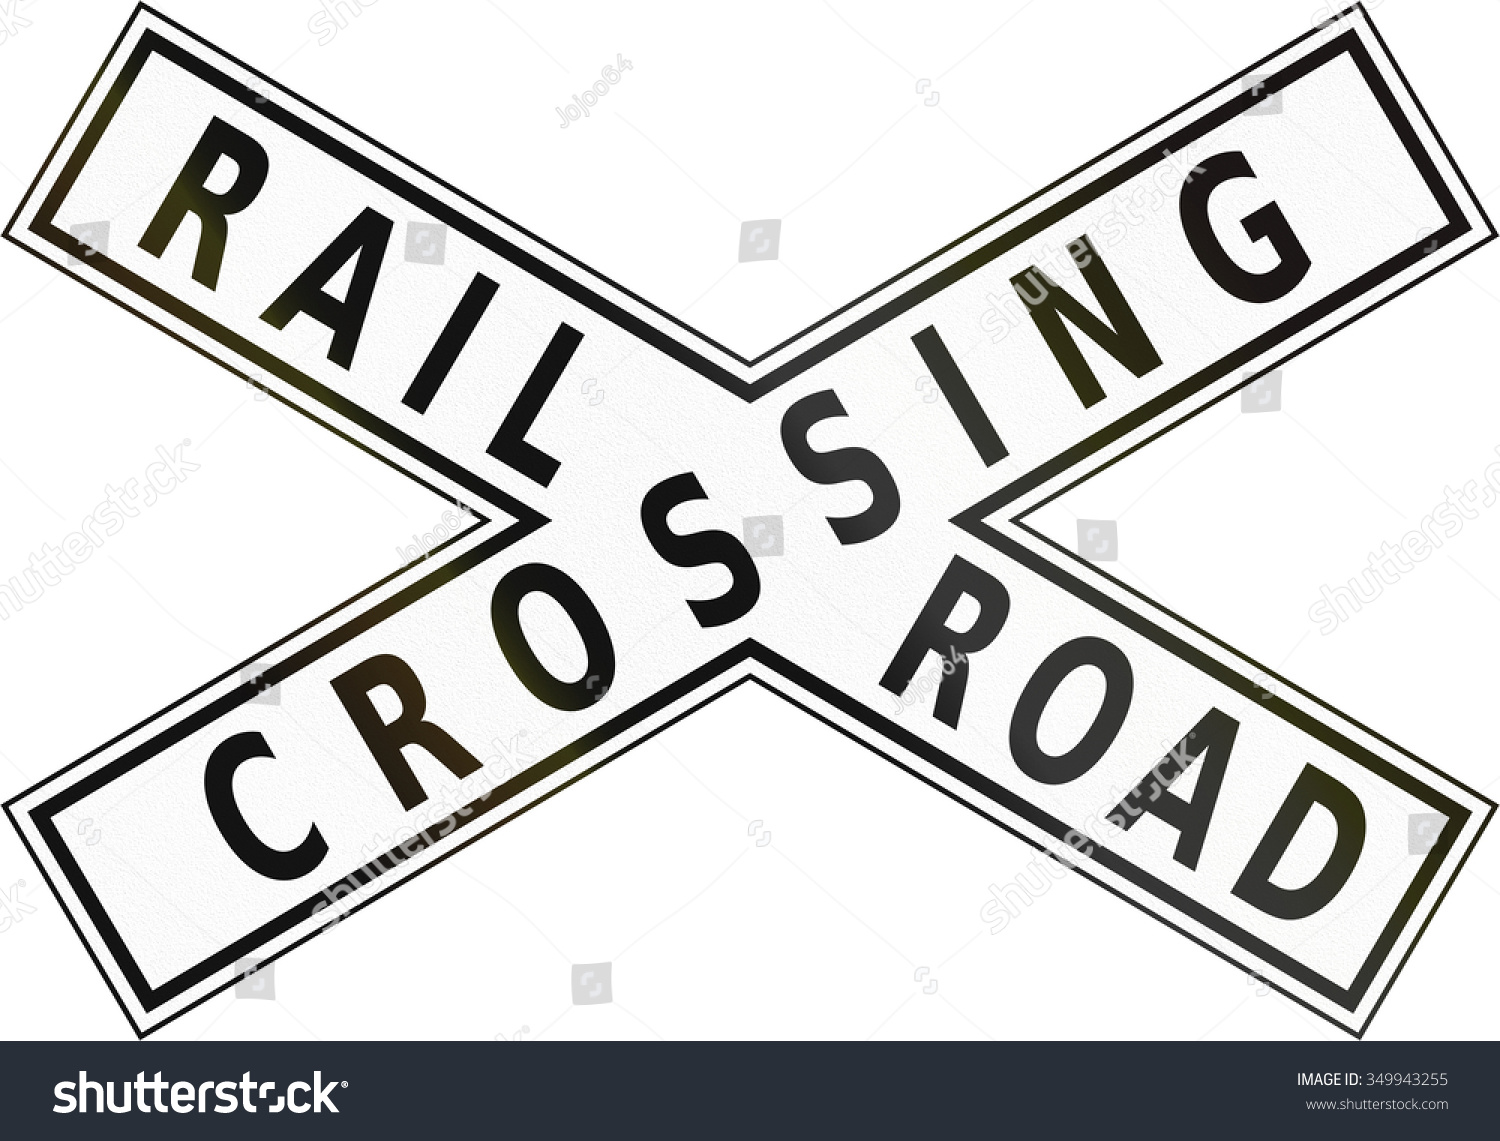 Road sign philippines railroad crossbuck stock illustration road sign in the philippines railroad crossbuck buycottarizona Image collections